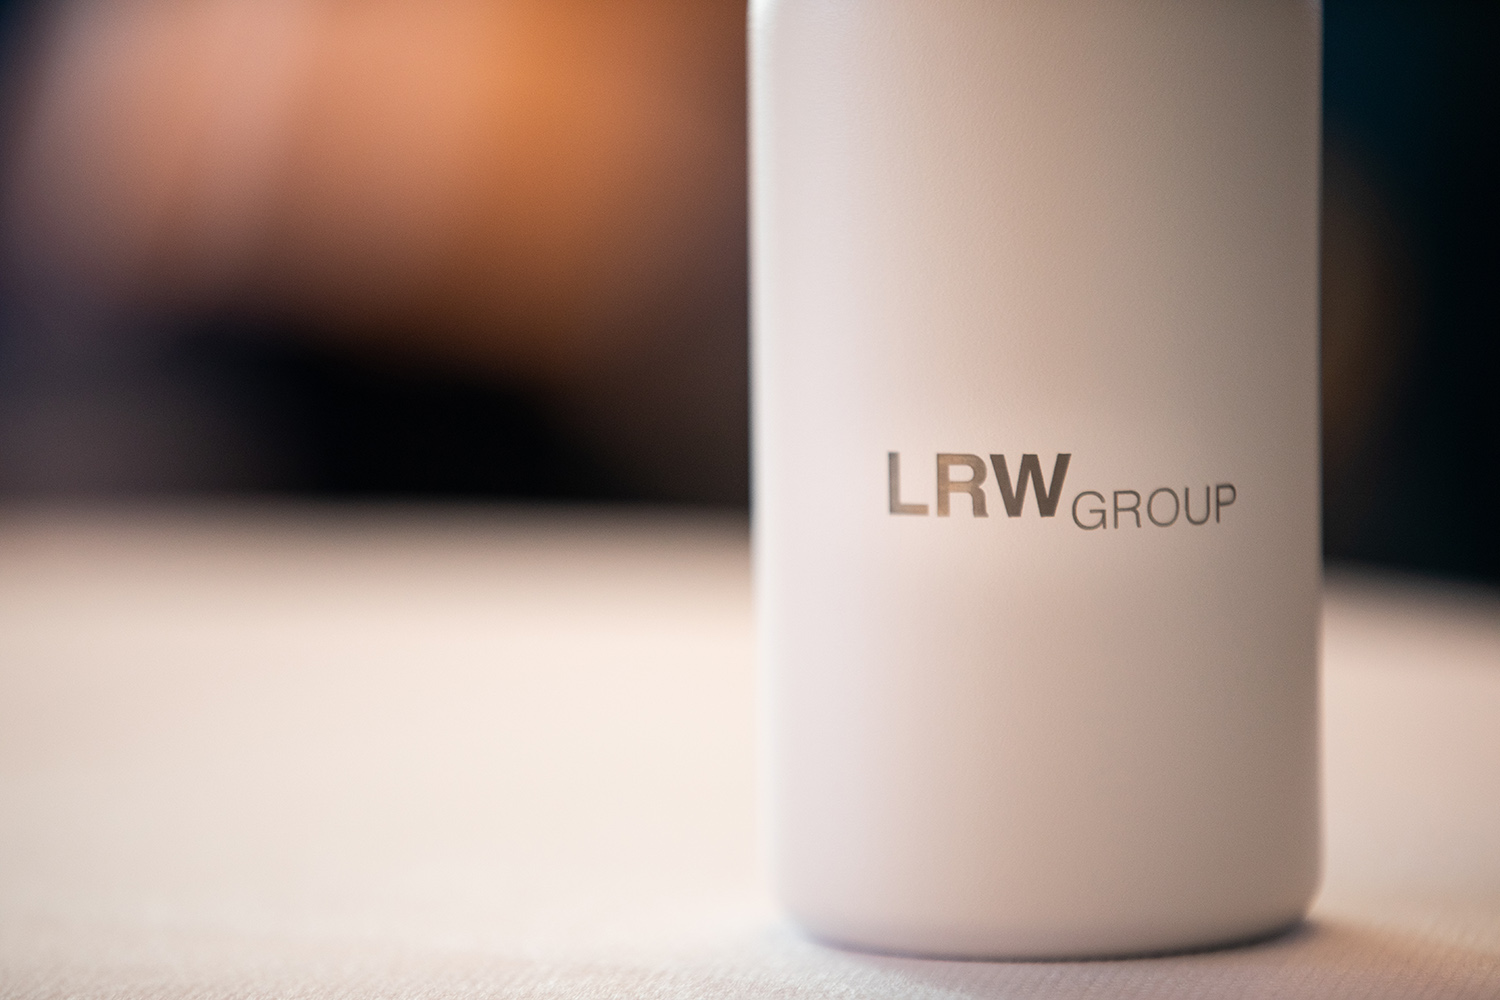 Global insights leader LRW Group brought together some of the brightest minds in beauty for a lively and thoughtful discussion on the ever-changing world of beauty.